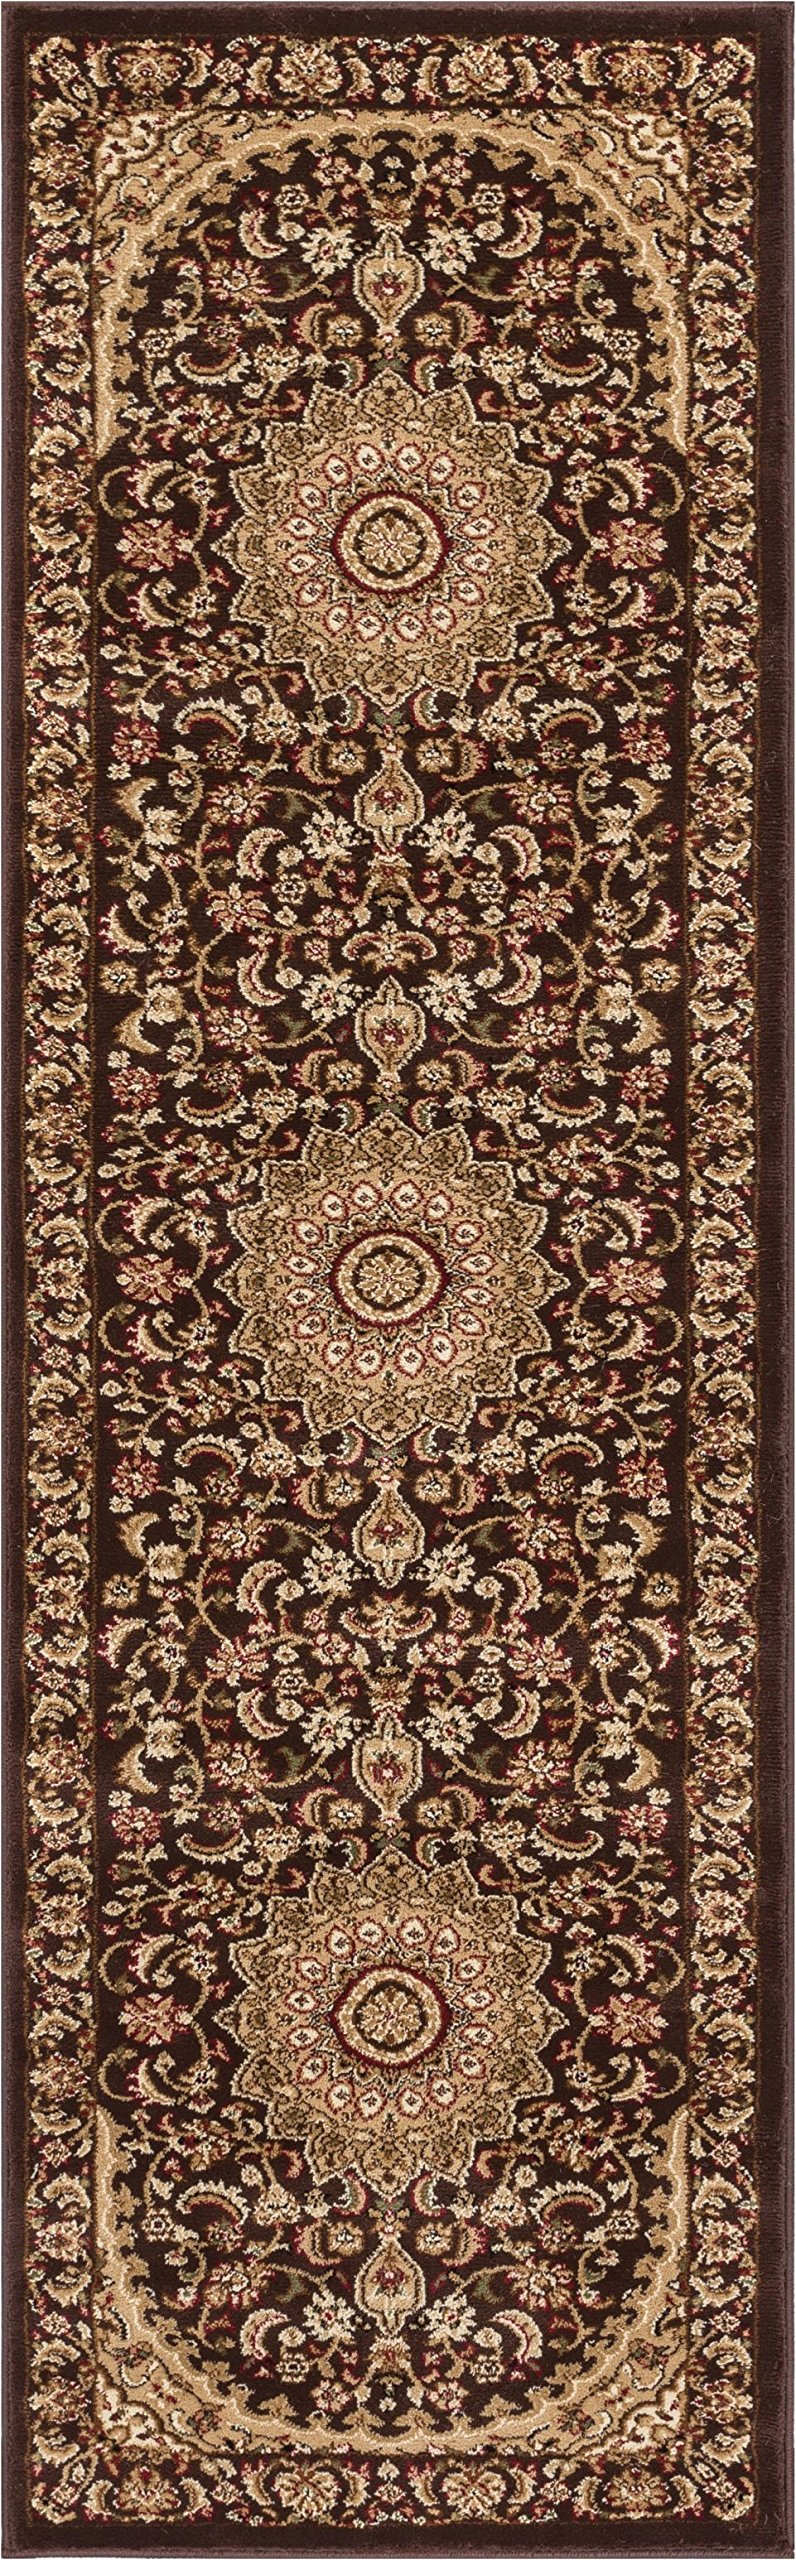 Sultan Medallion Brown Oriental 2 x 7 (2'3'' x 7'3'' Runner) Persian Floral Formal Traditional Area Rug Easy Clean Stain Fade Resistant Shed Free Modern Classic Contemporary Thick Soft Plush Rug